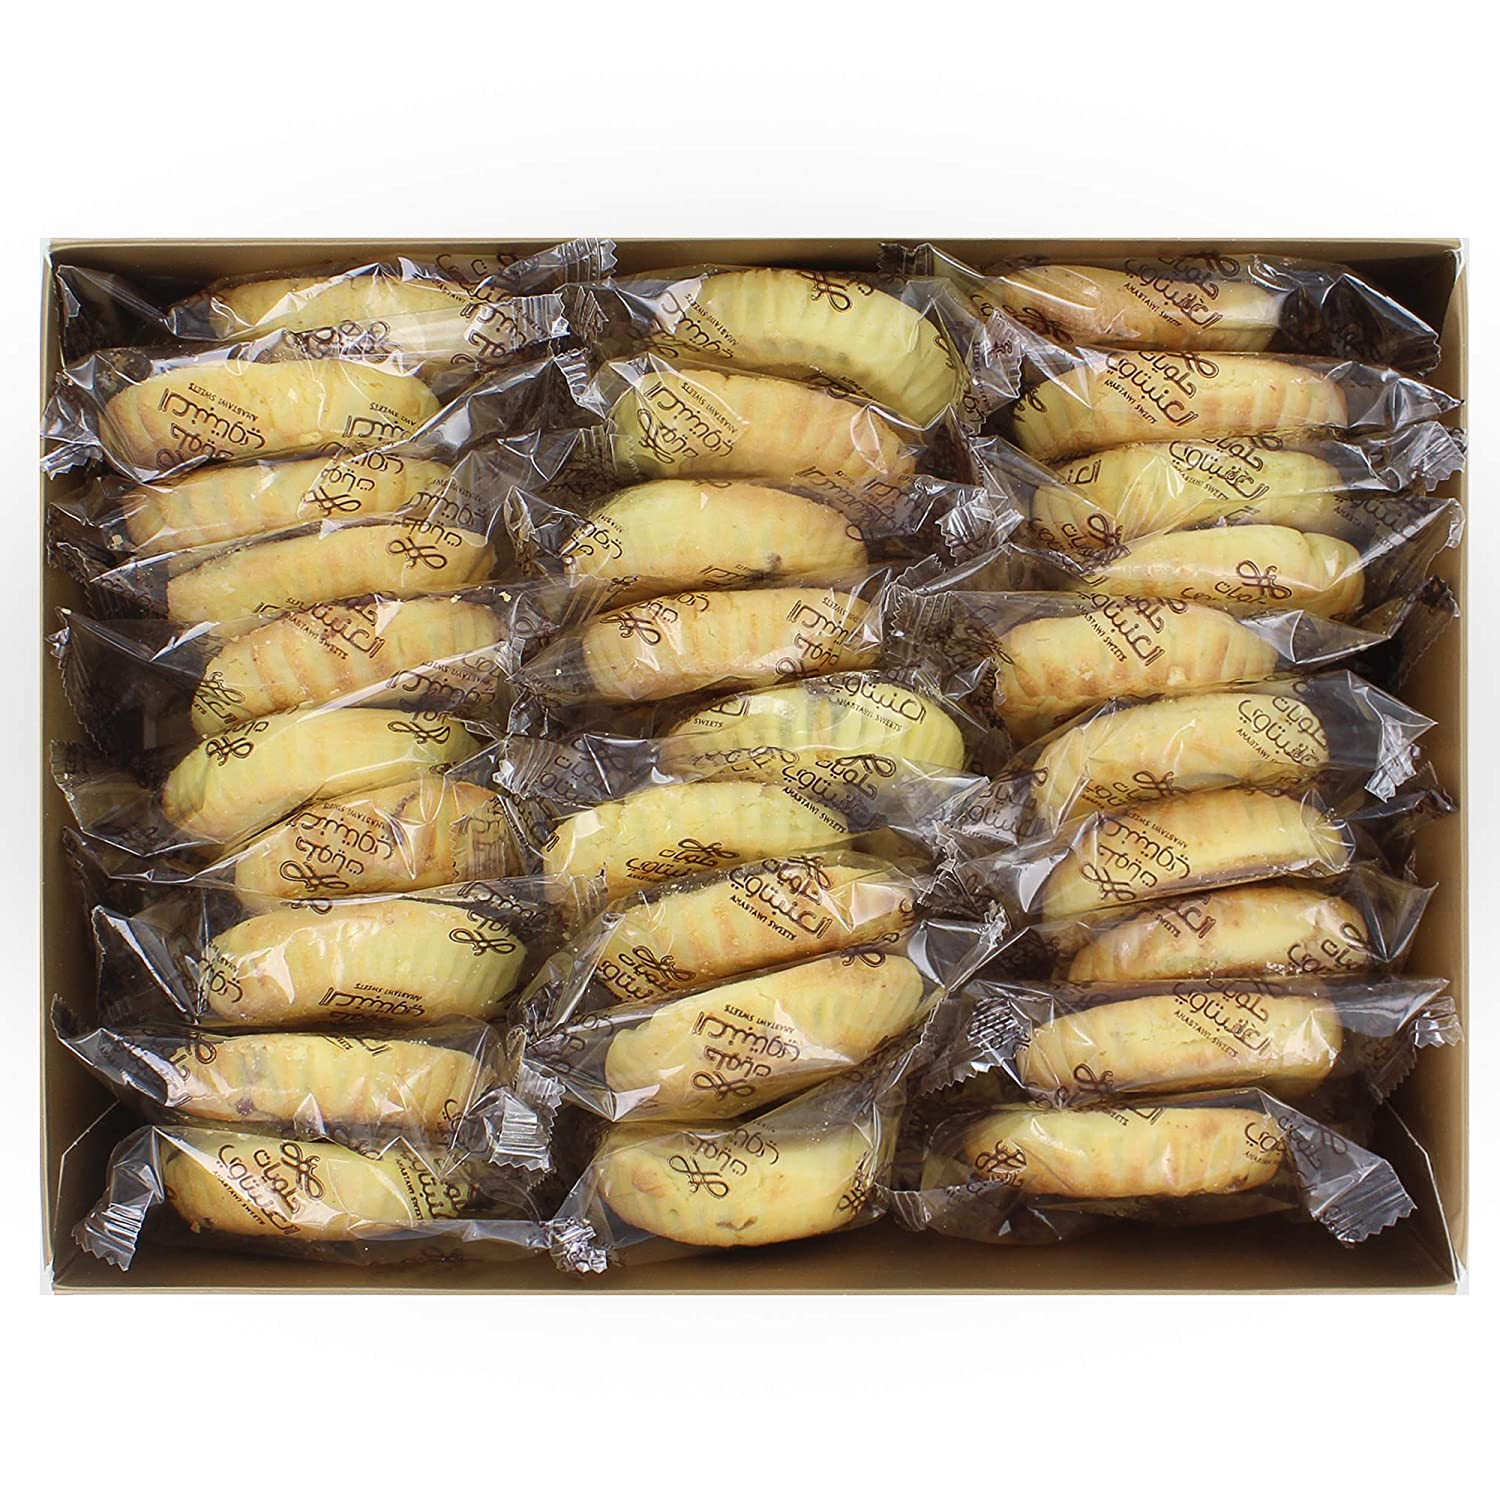 Single Maamoul (Cookie Pastry) with Dates - Authentic Ramadan and Middle East Sweets